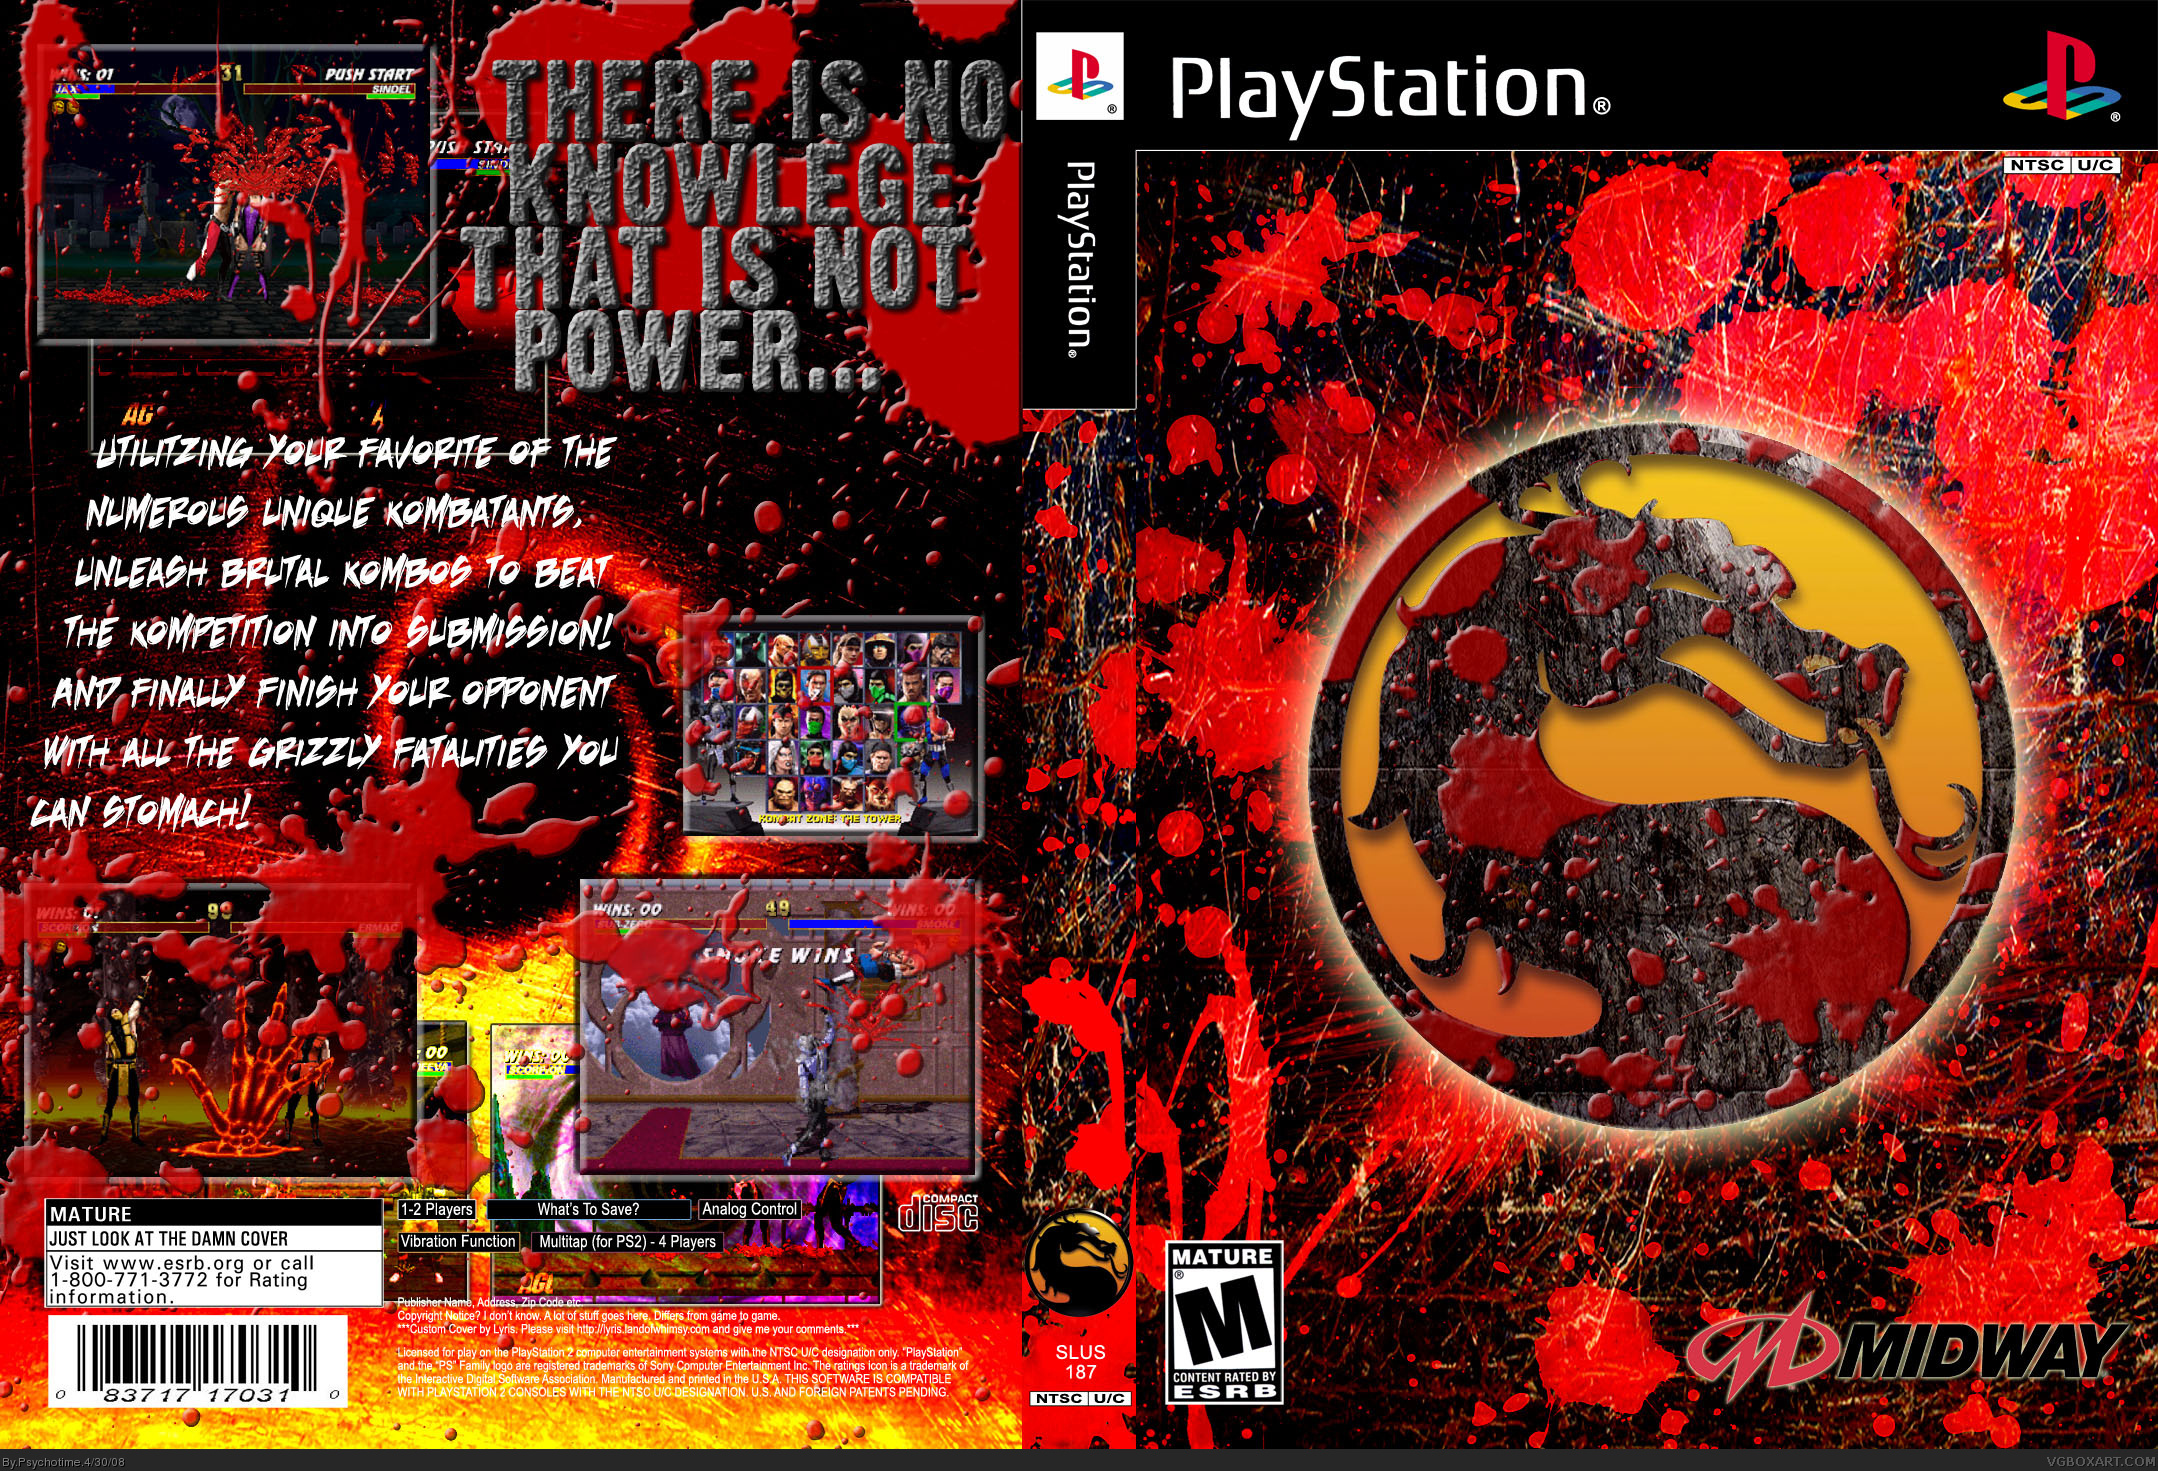 PlayStation » Mortal Kombat Trilogy Box Cover